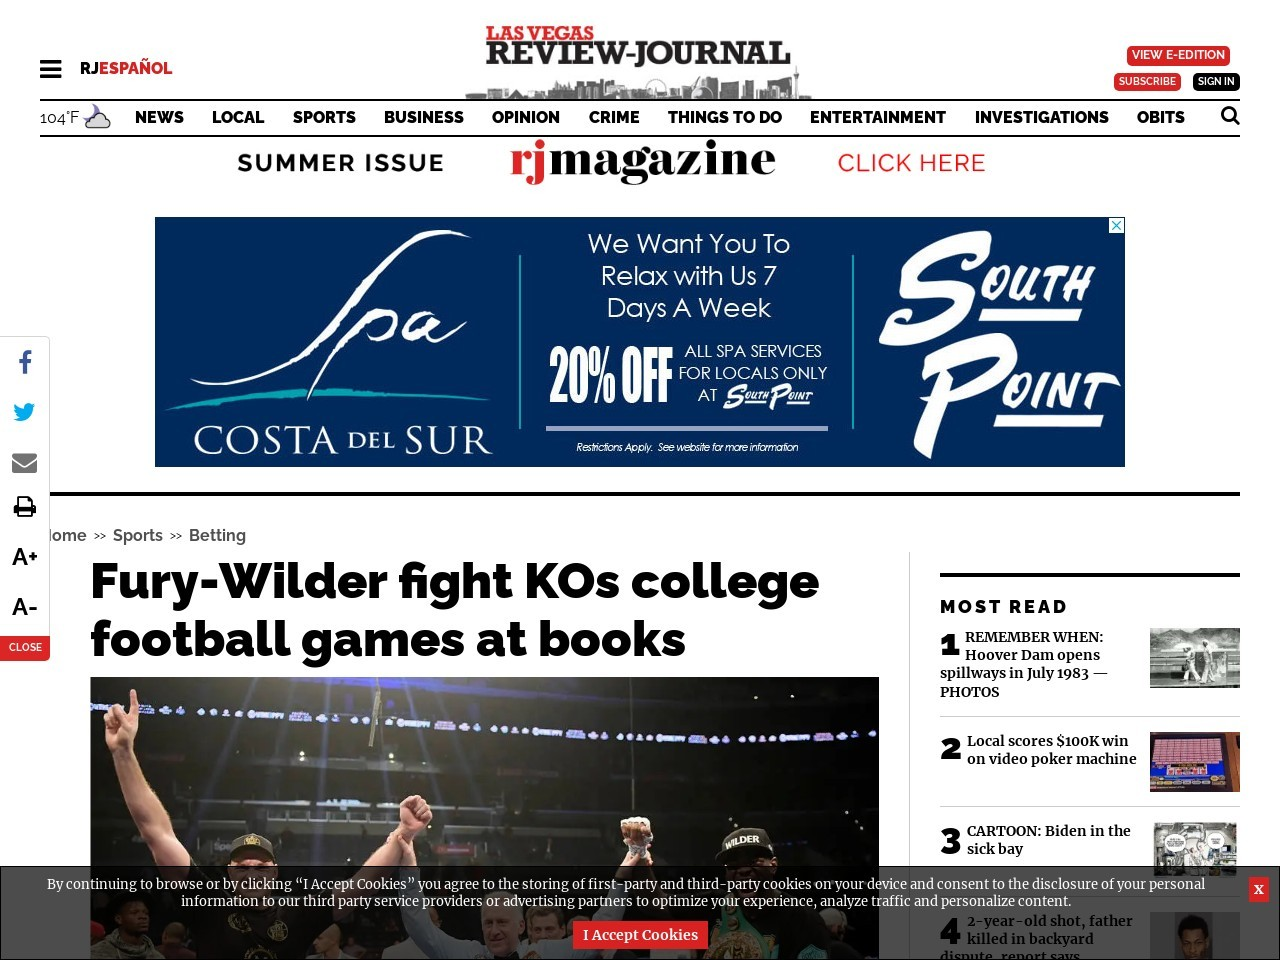 Fury-Wilder fight KOs college football games at books